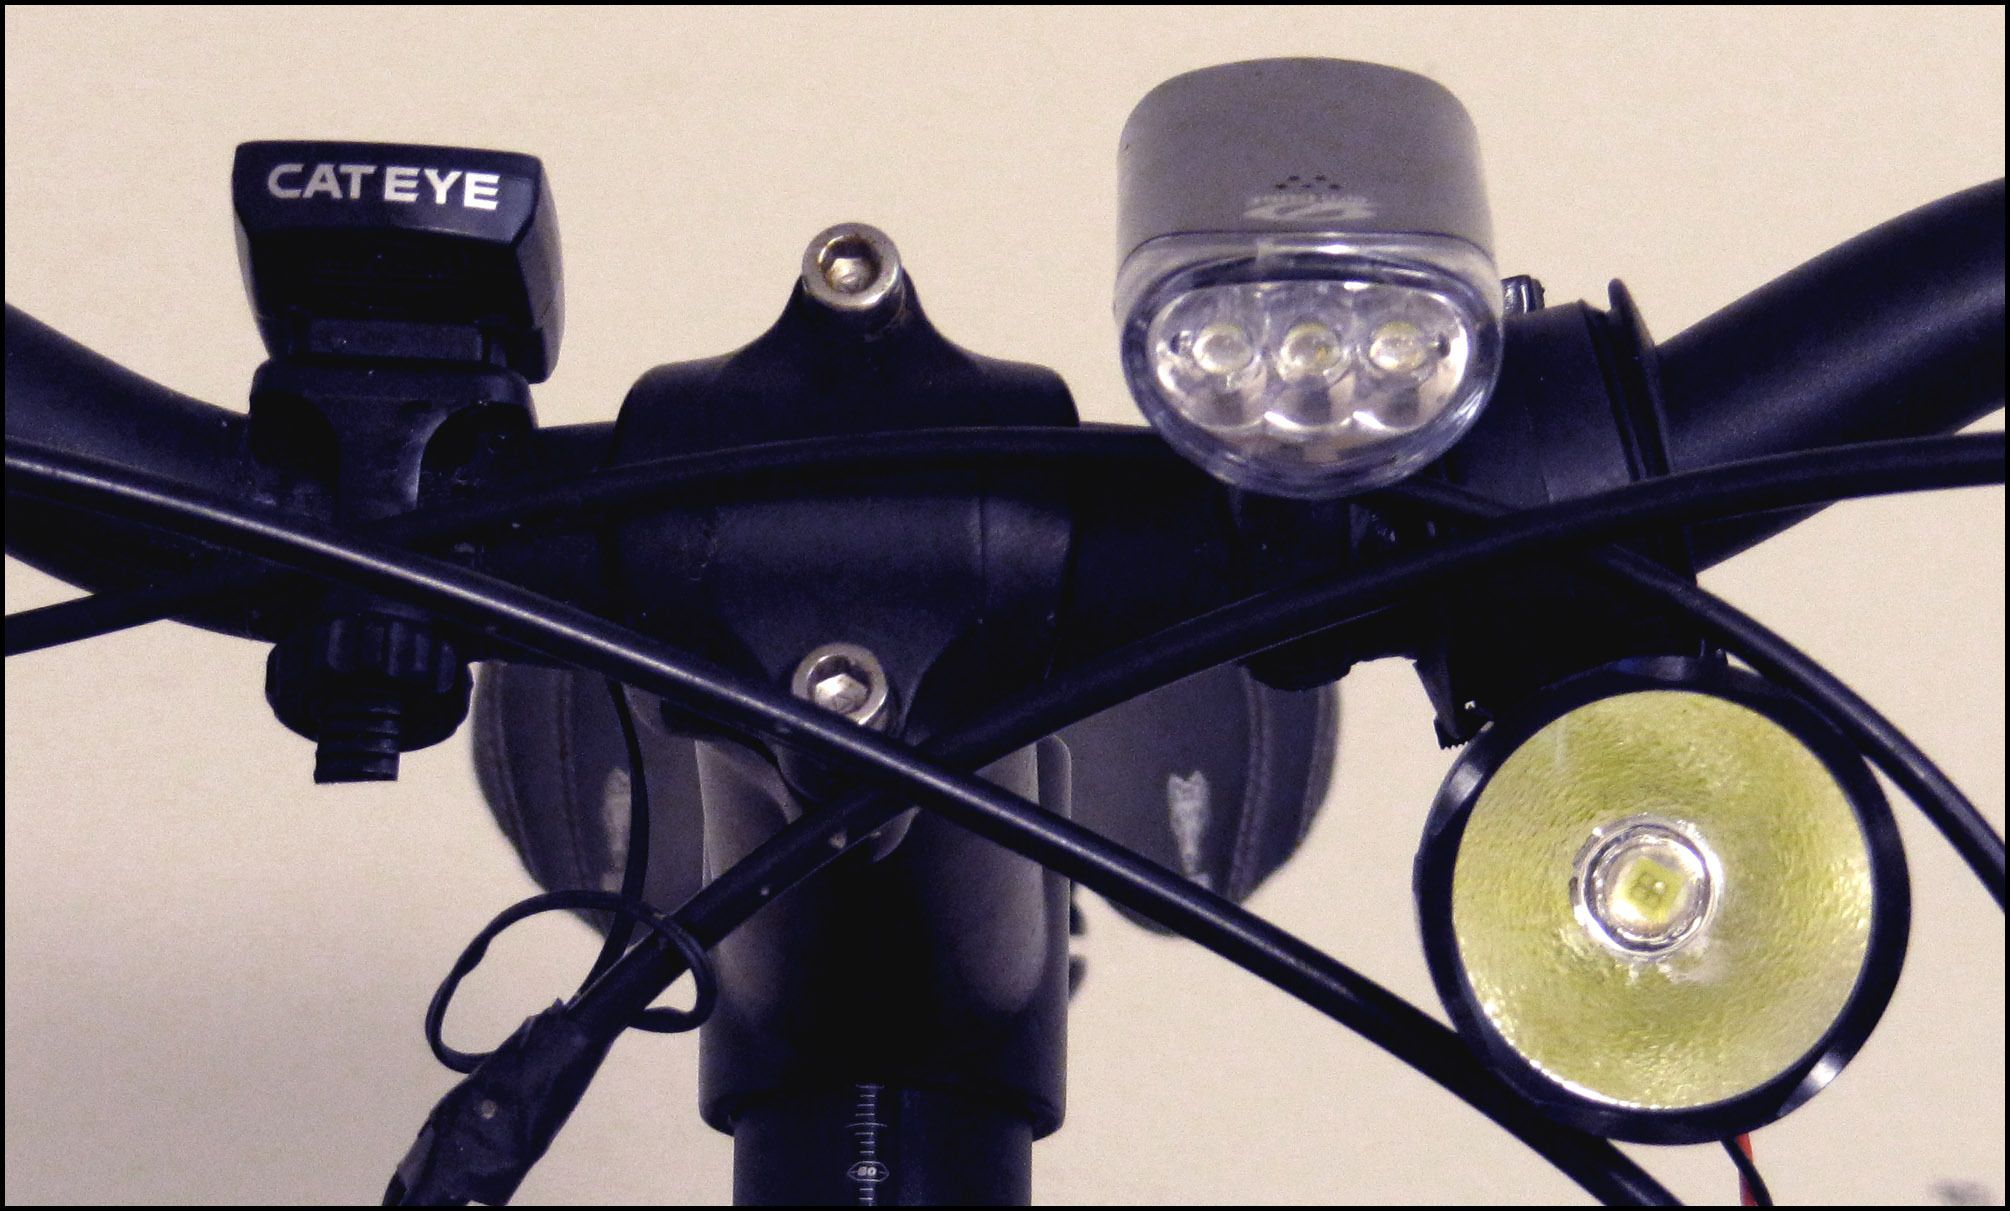 Voltage Regulated 5v Bicycle Dynamo Light Usb Charger With